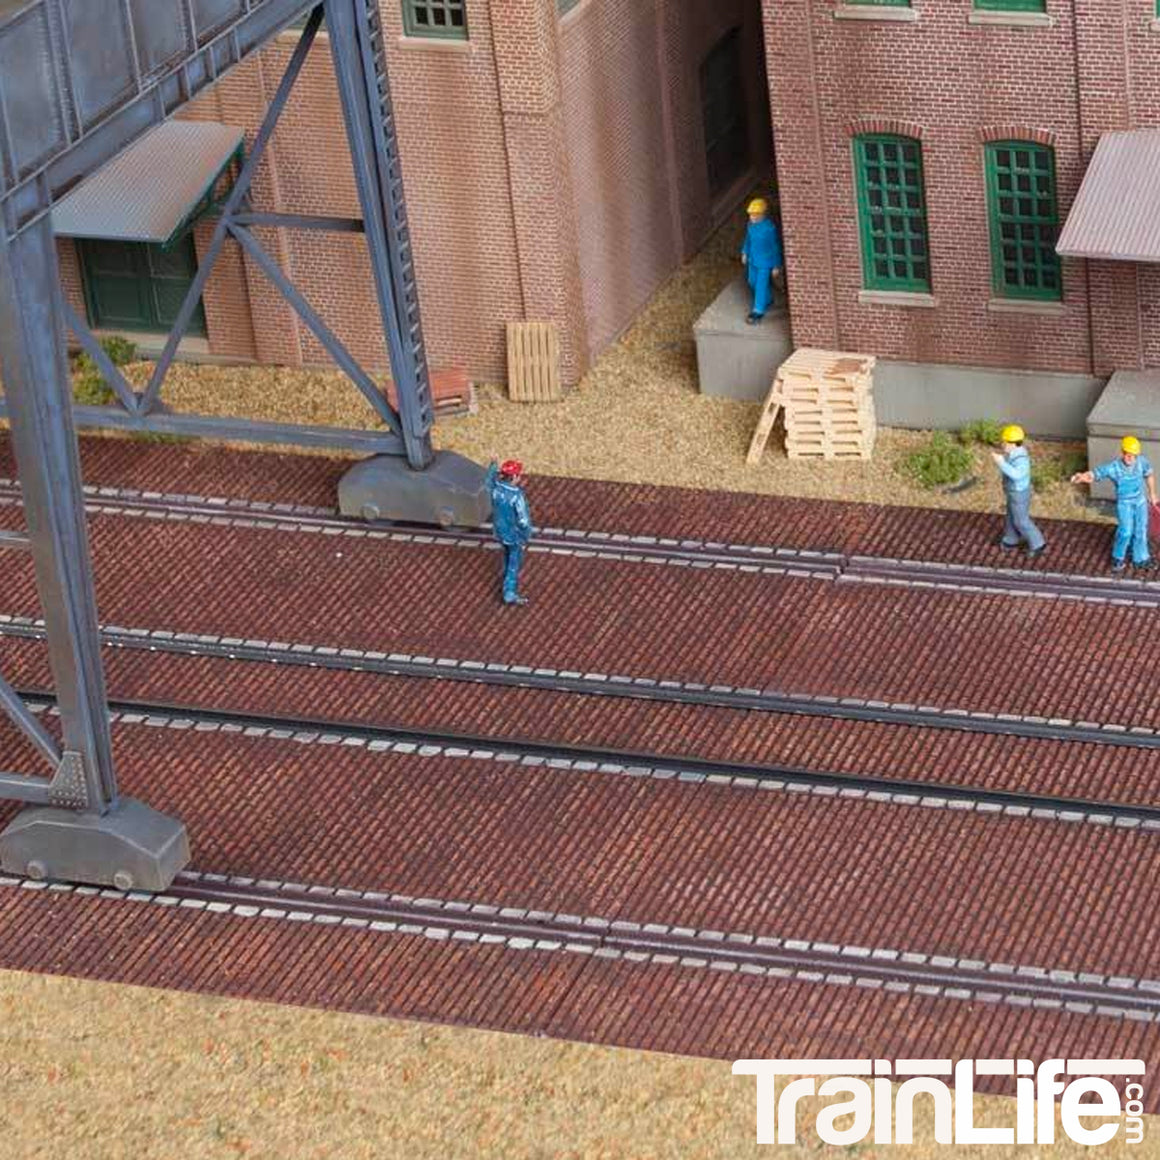 HO Scale: Brick Craneway Base and Street - 3 Pack - Kit